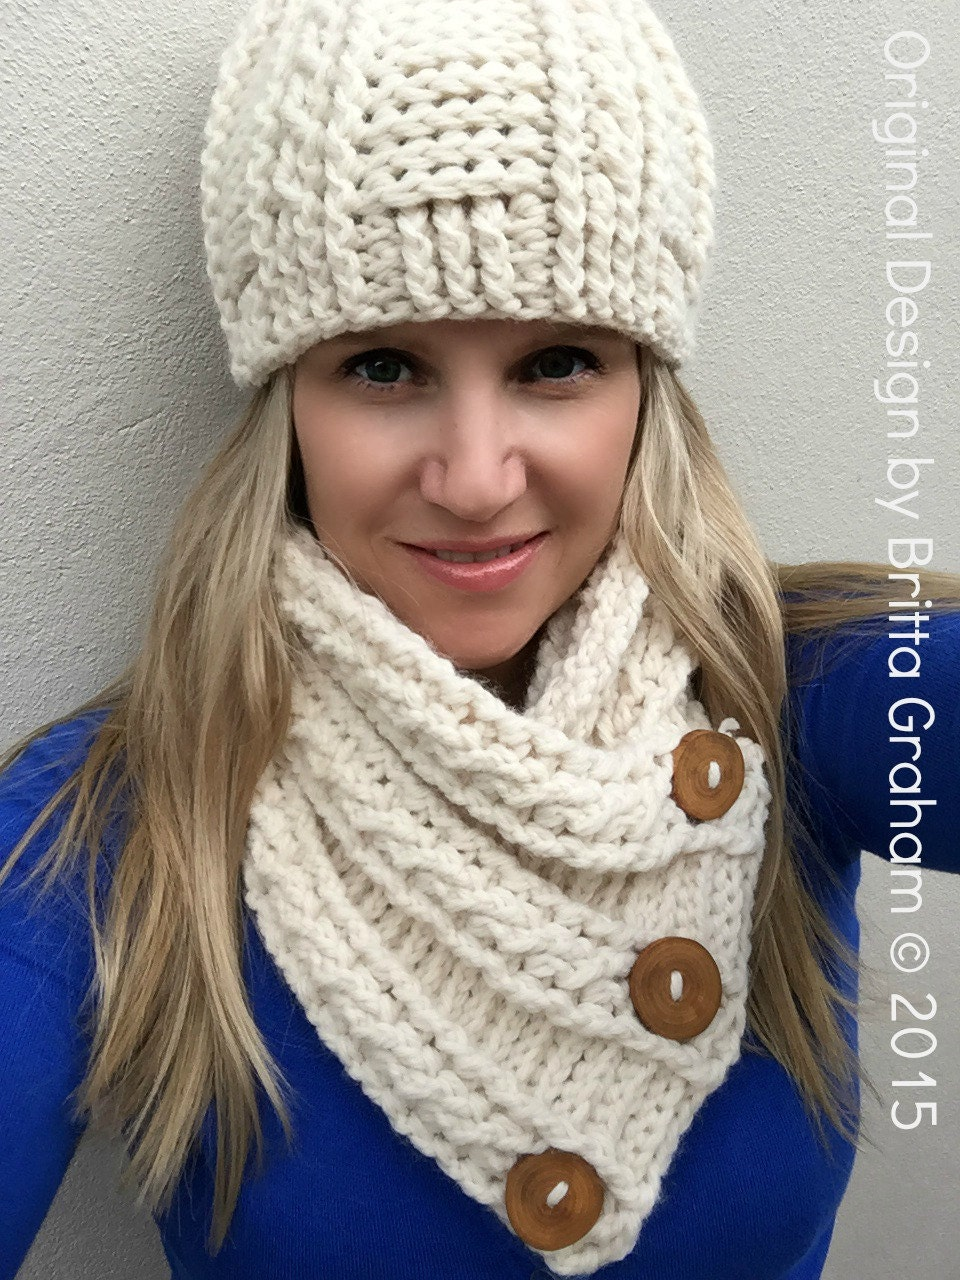 Crochet Patterns Chunky Yarn : Cabled Scarf Crochet Pattern for chunky yarn by bubnutPatterns